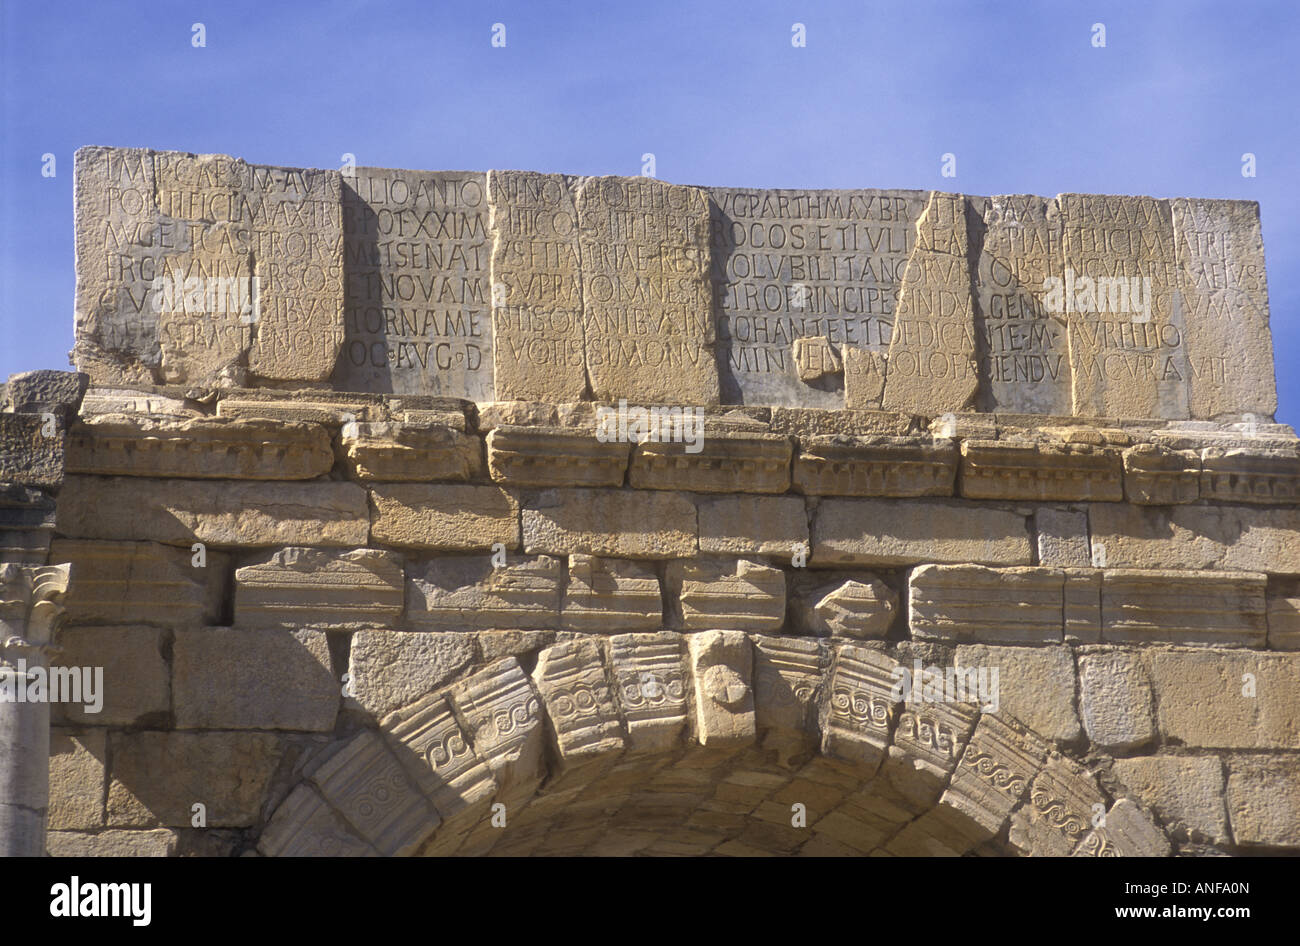 Latin Inscription obove the Triumphal Arch in the Roman ruins at Volubilis Morocco North Africa - Stock Image